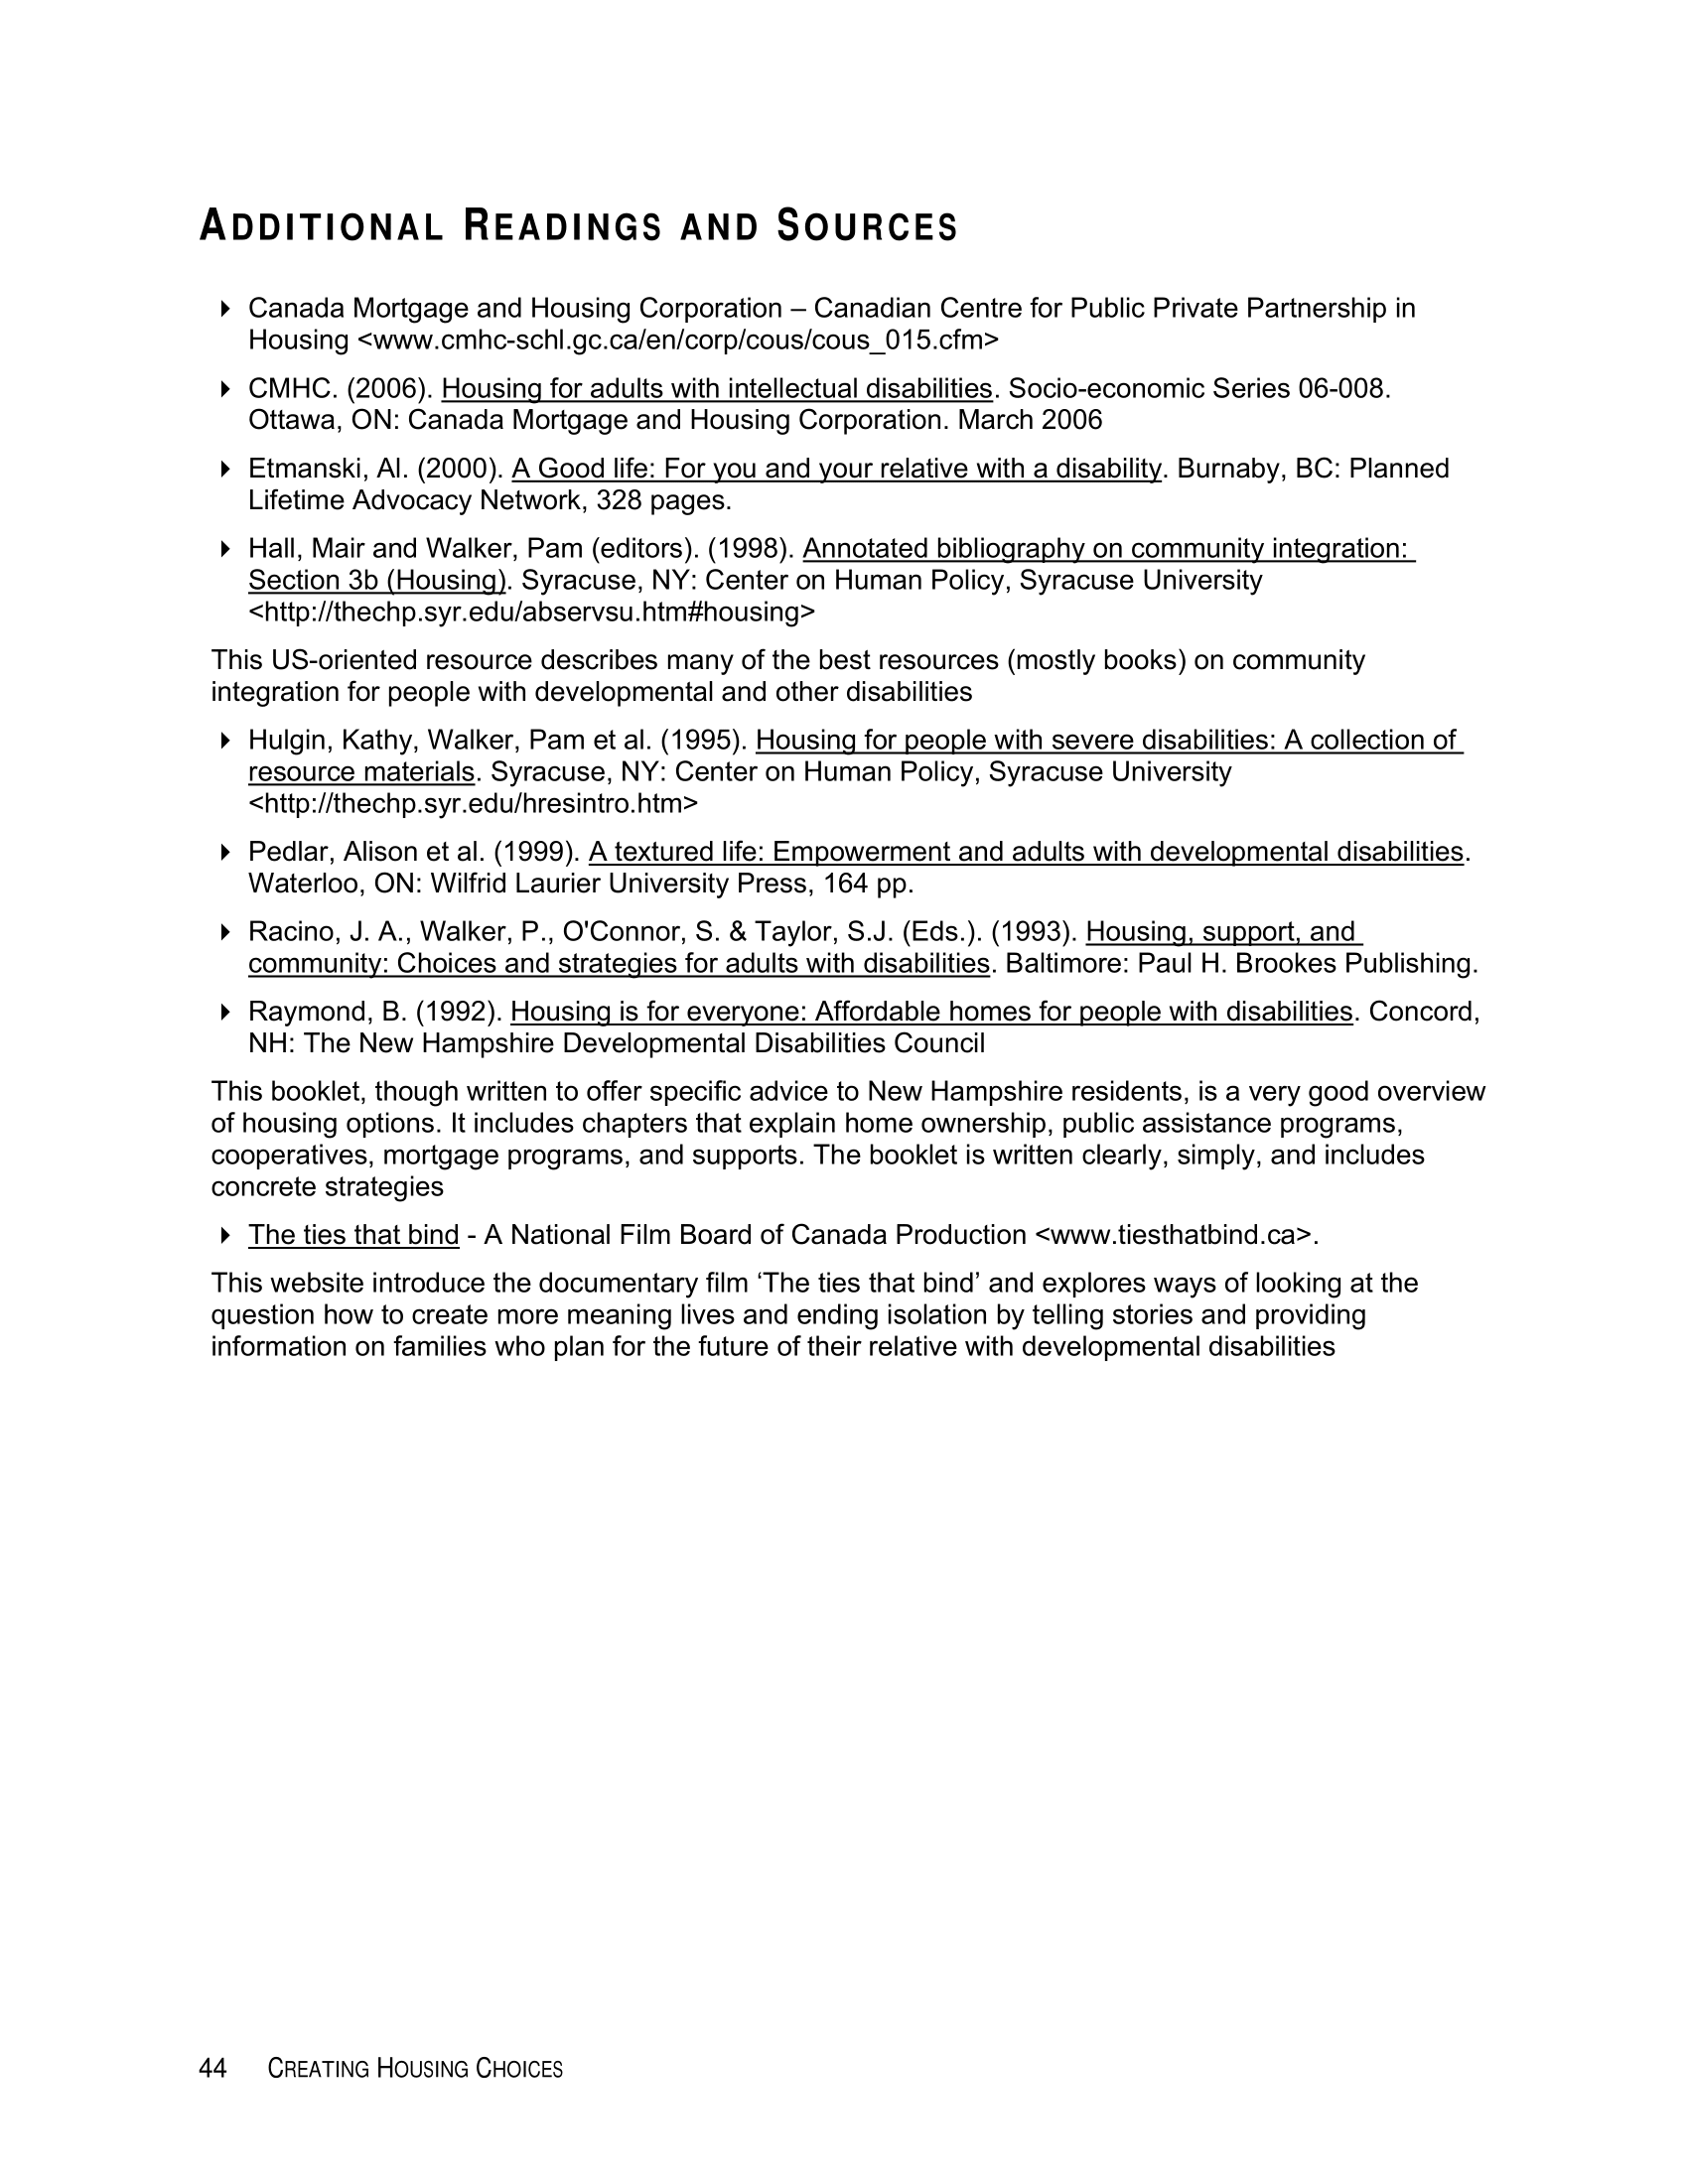 Creating Housing Choices - 2006-45.png